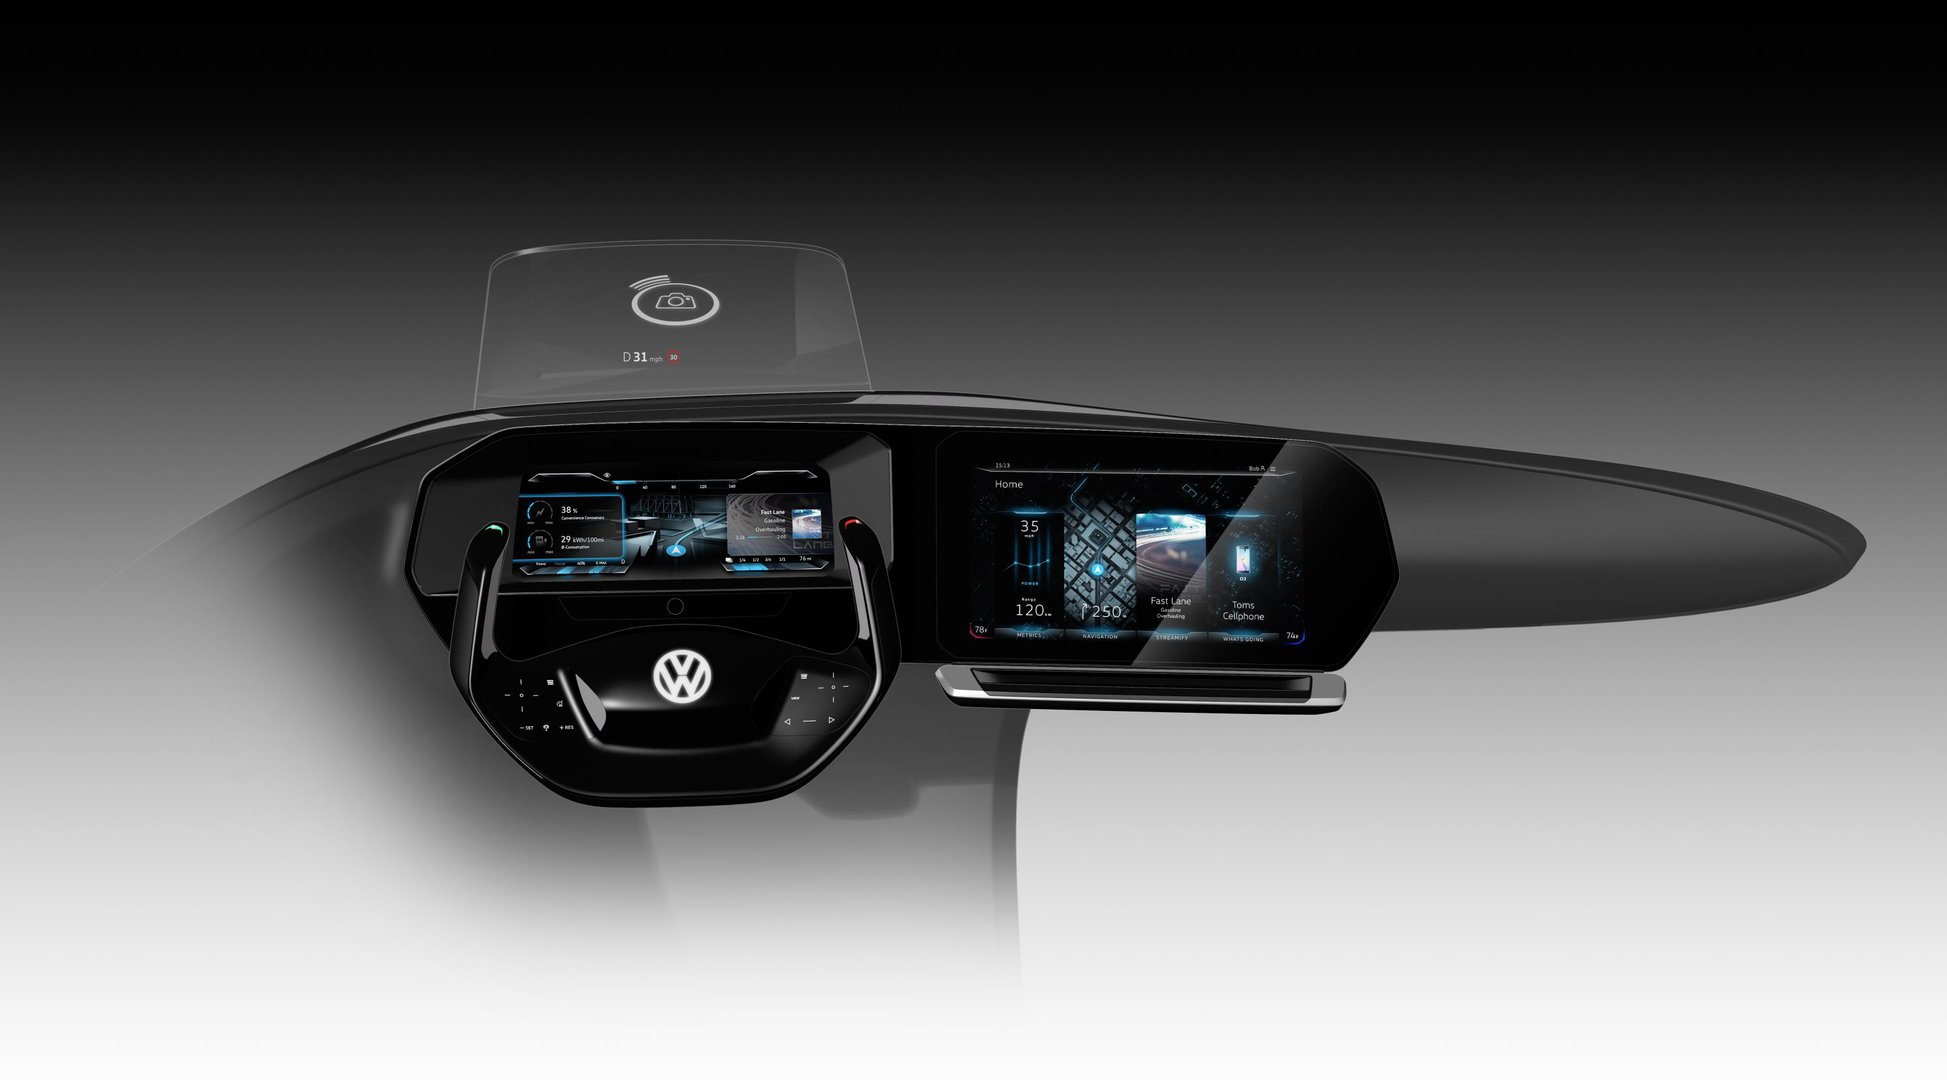 Volkswagen Digital Cockpit CES 2017